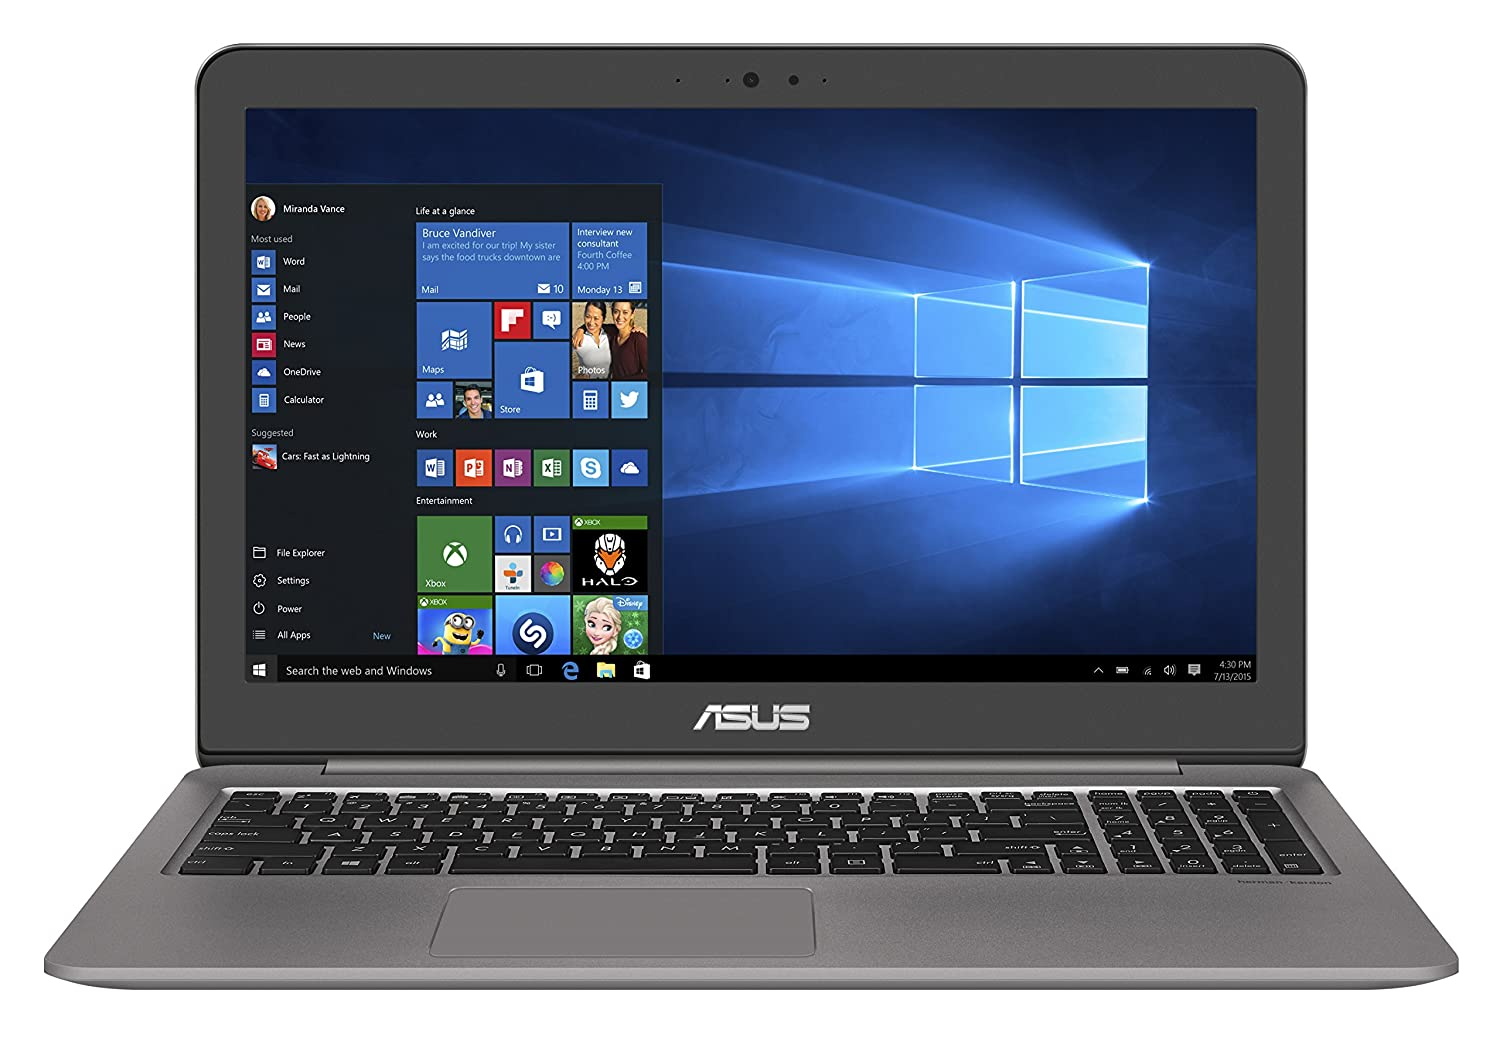 The 10 Best Laptops For College 2020 2021 Buyers Guide